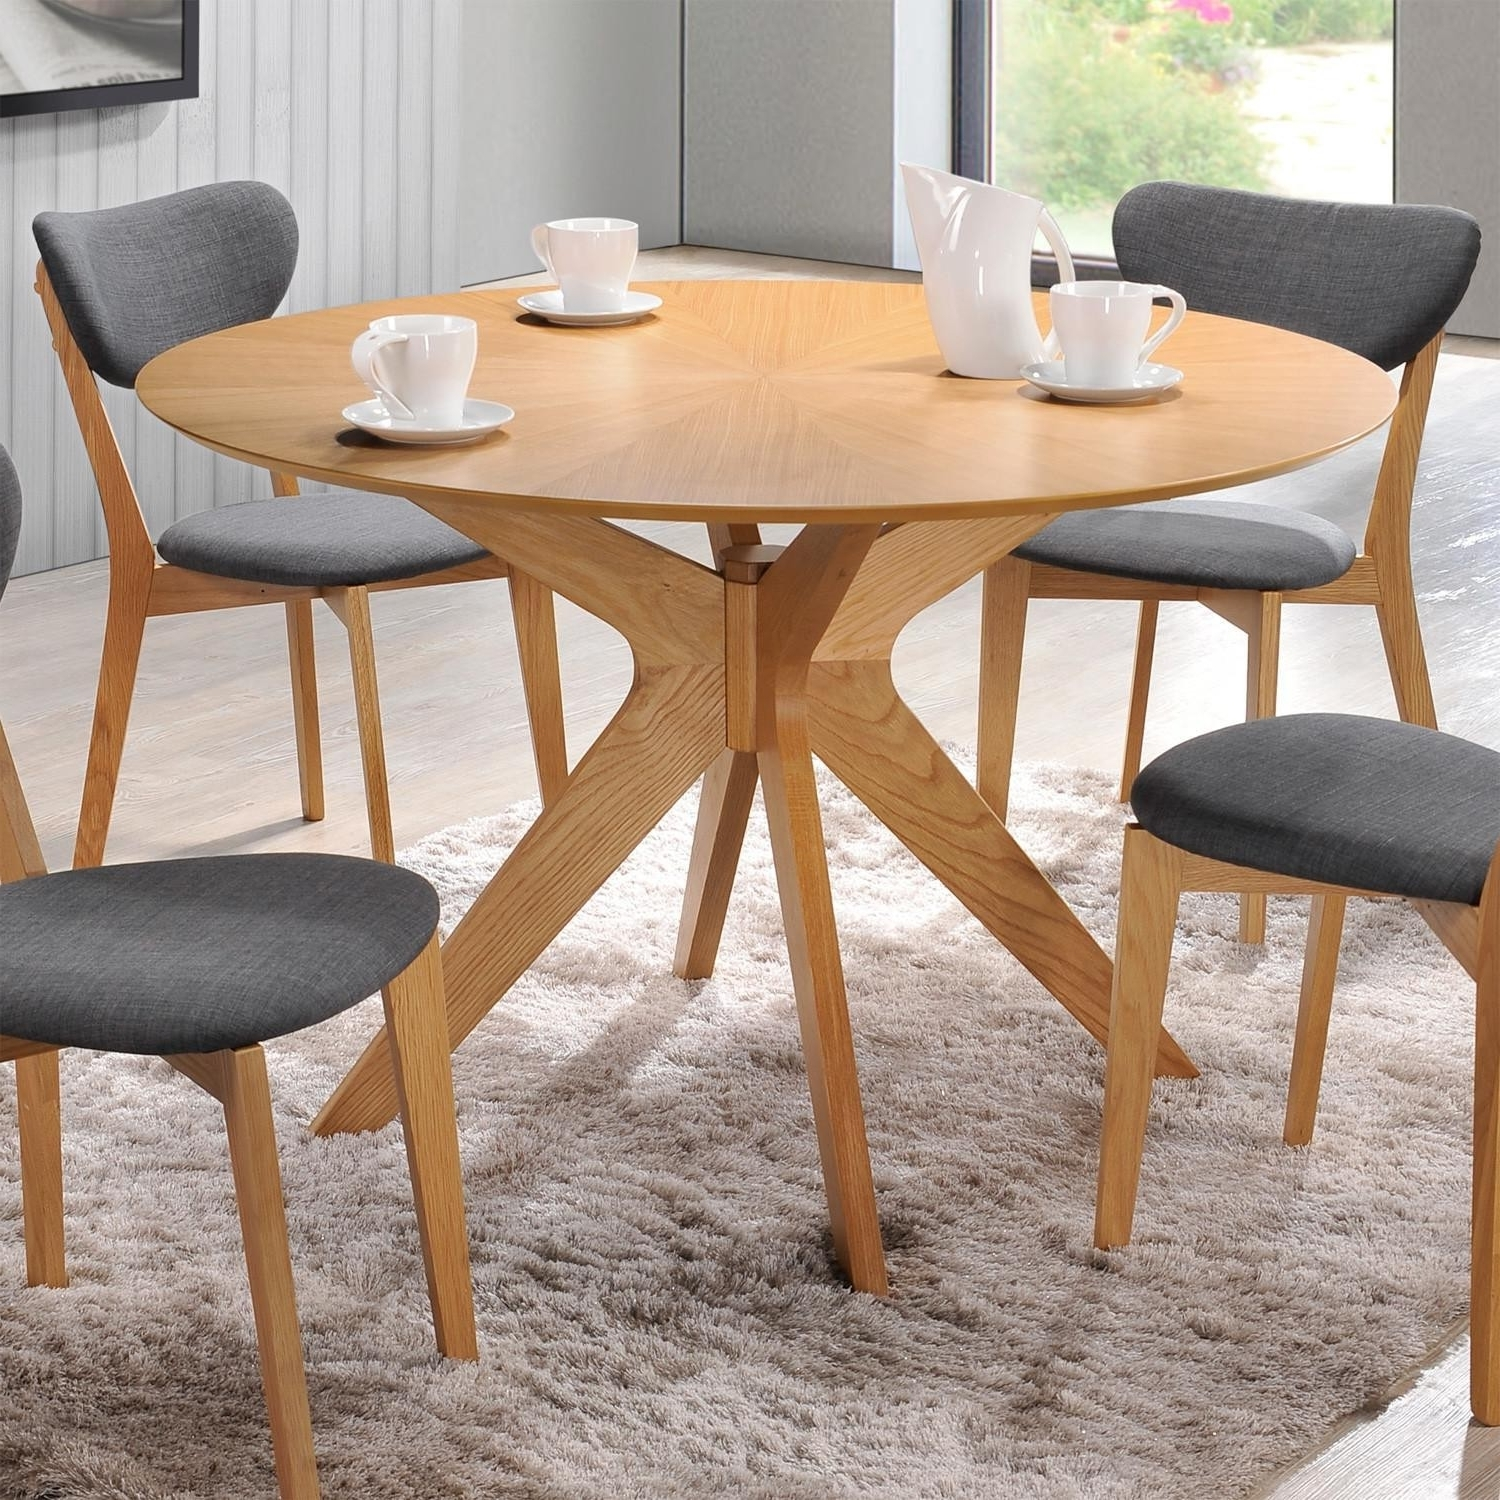 Preferred Scandinavian Dining Tables And Chairs Inside Scandinavian Dining Tables Fresh All Modern Furniture (View 14 of 25)